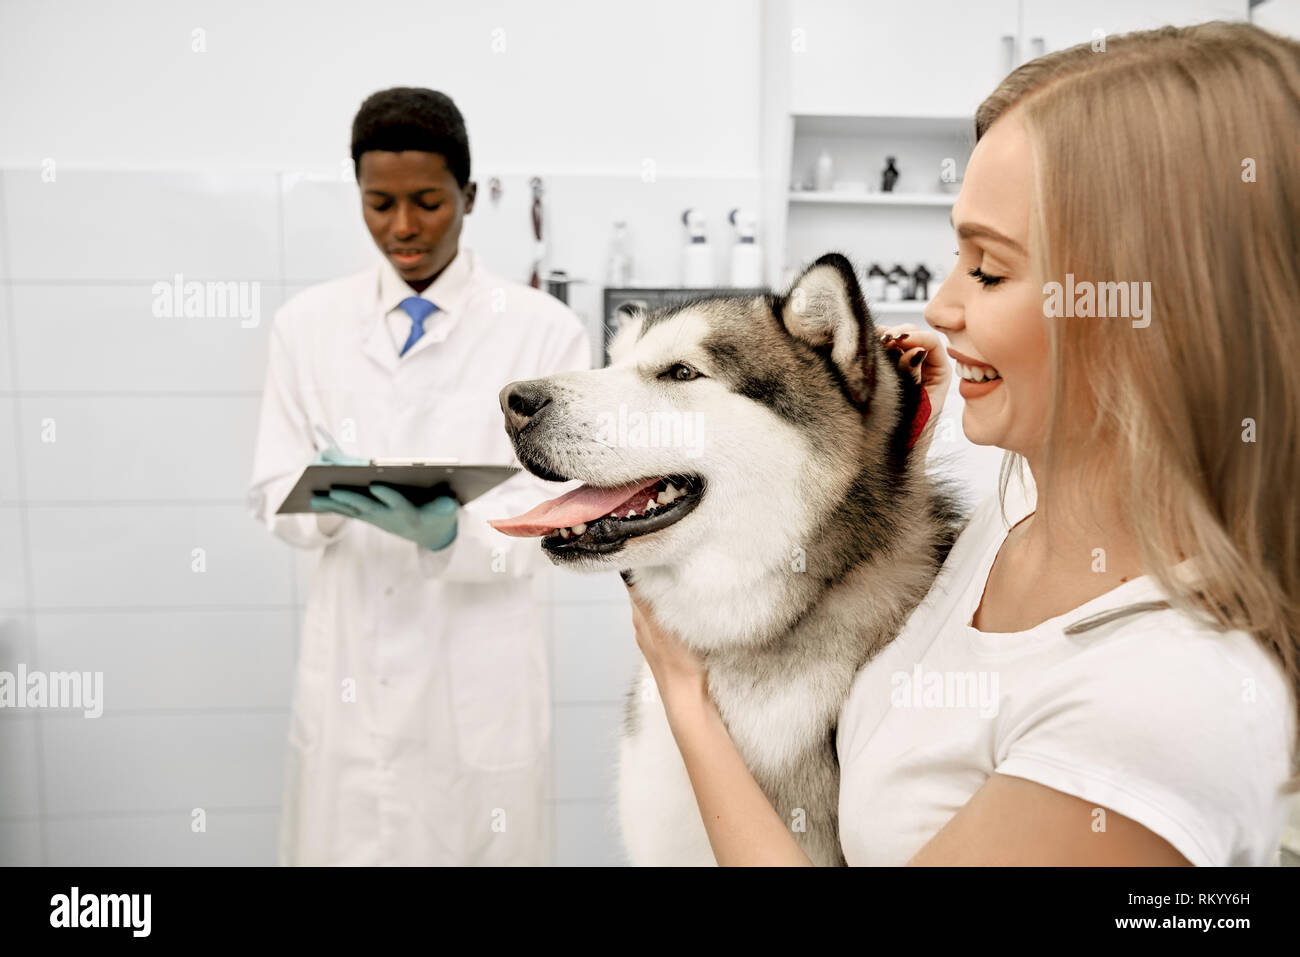 Alaskan malamute with pink tongue in vet clinic on examination. Owner of big beautiful dog standing near pet, stroking him. African doctor standing behind, writing in folder. - Stock Image